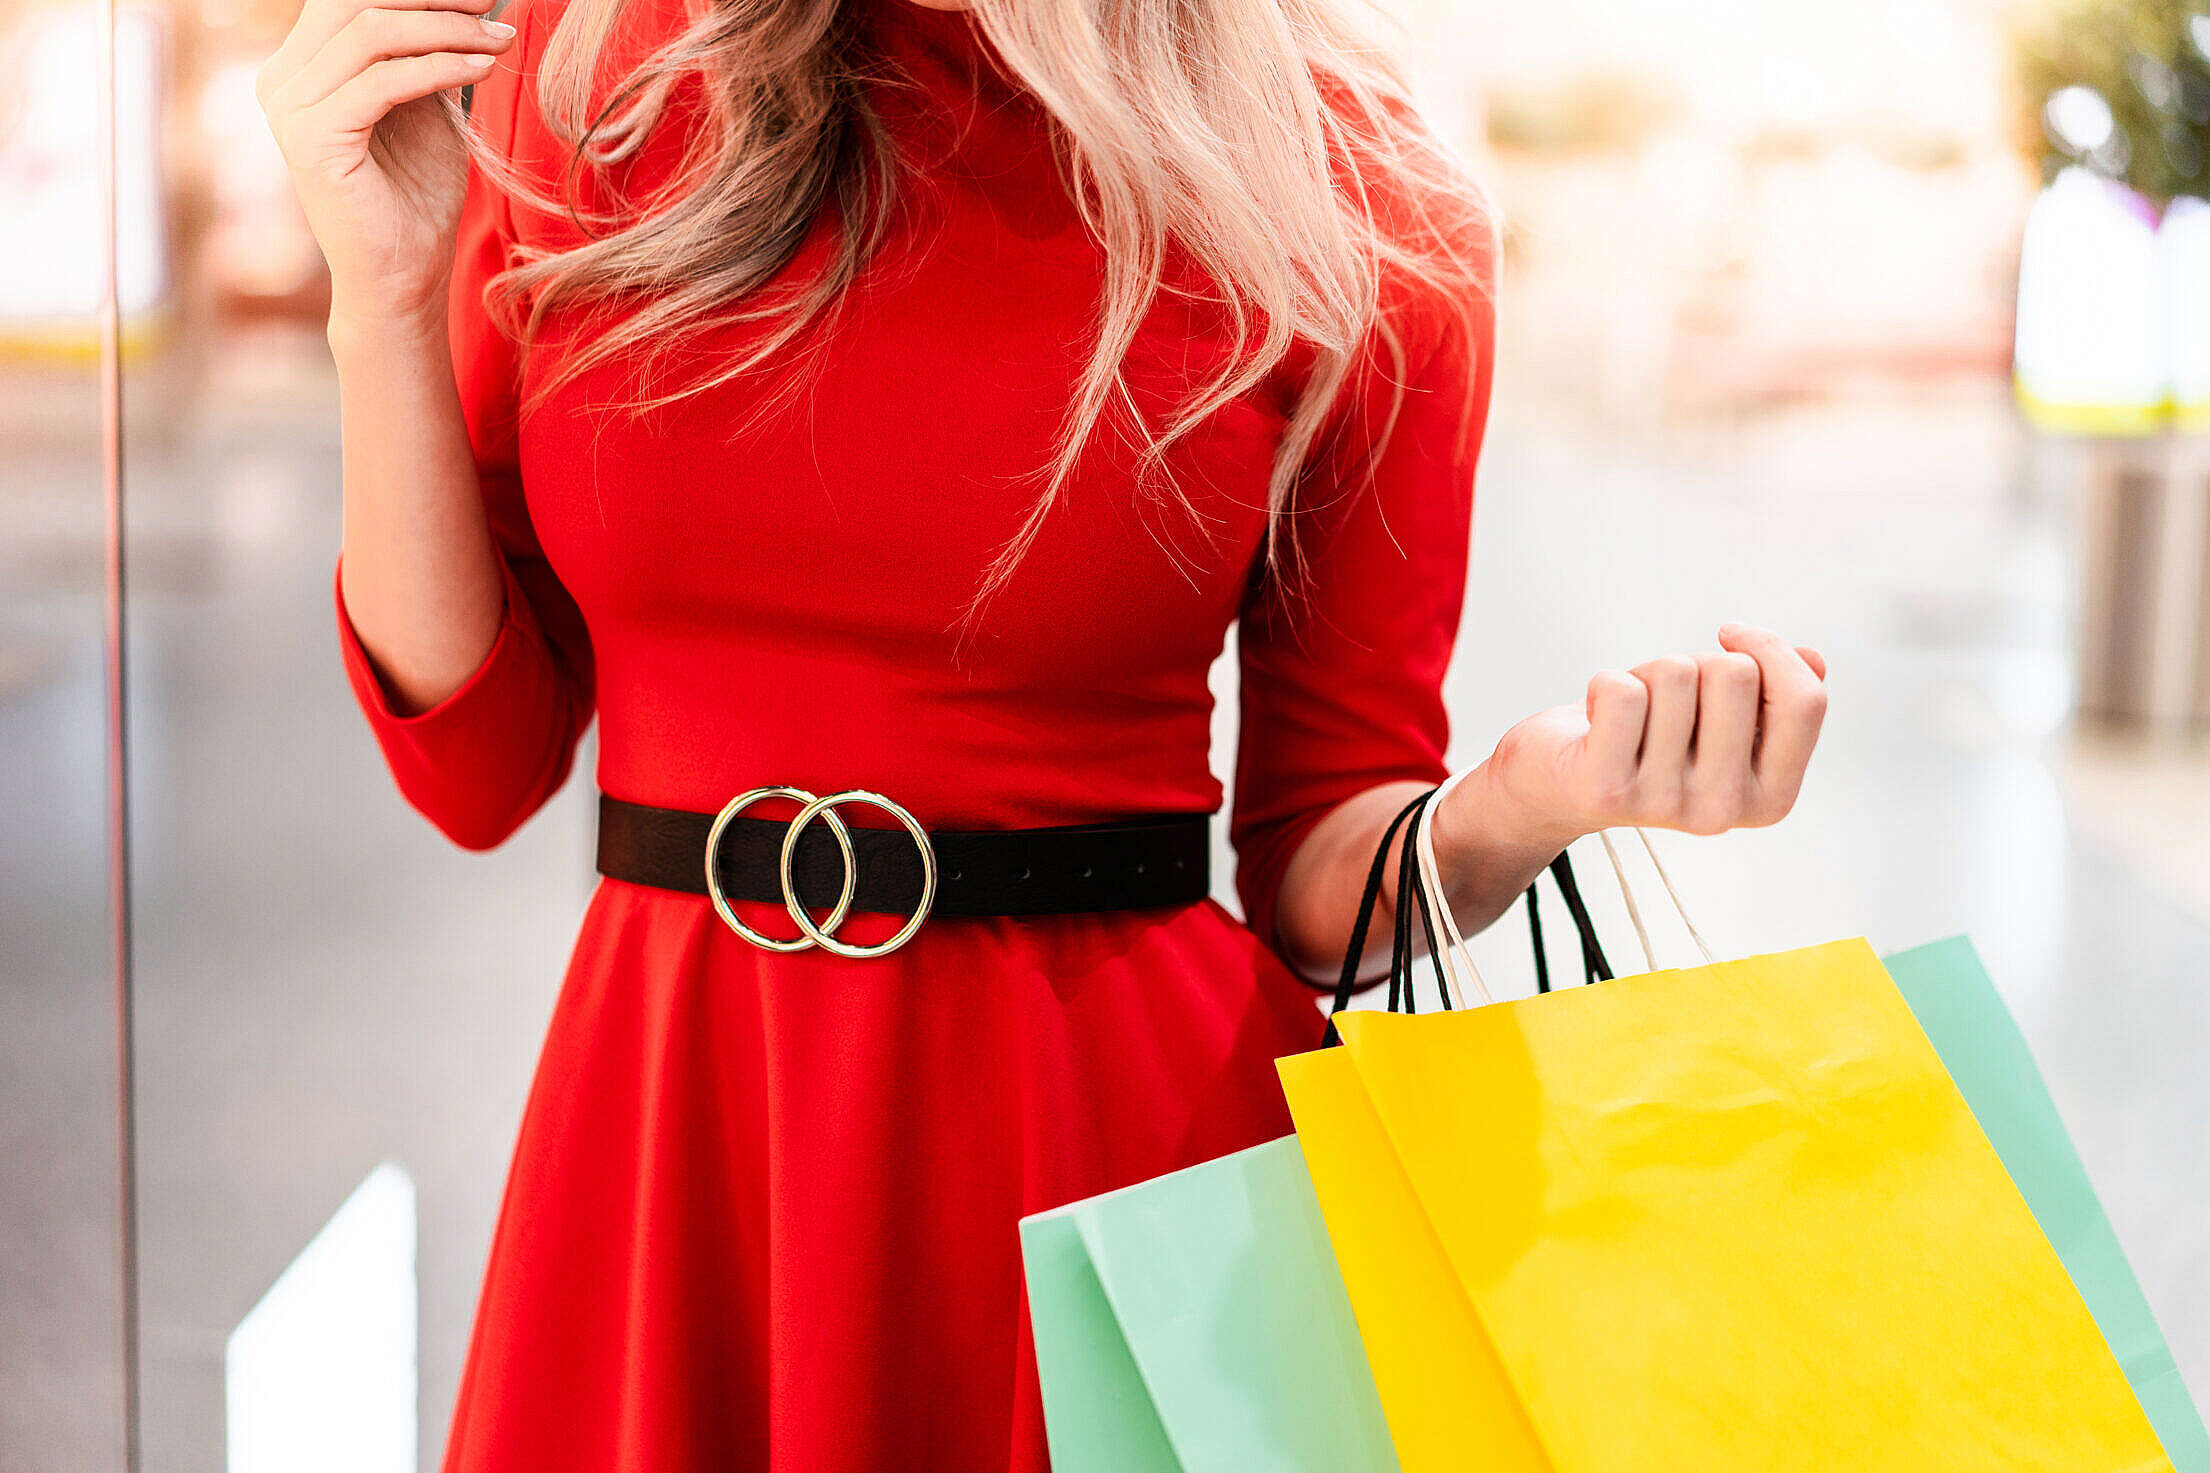 Well Dressed Woman in a Shopping Mall Free Stock Photo